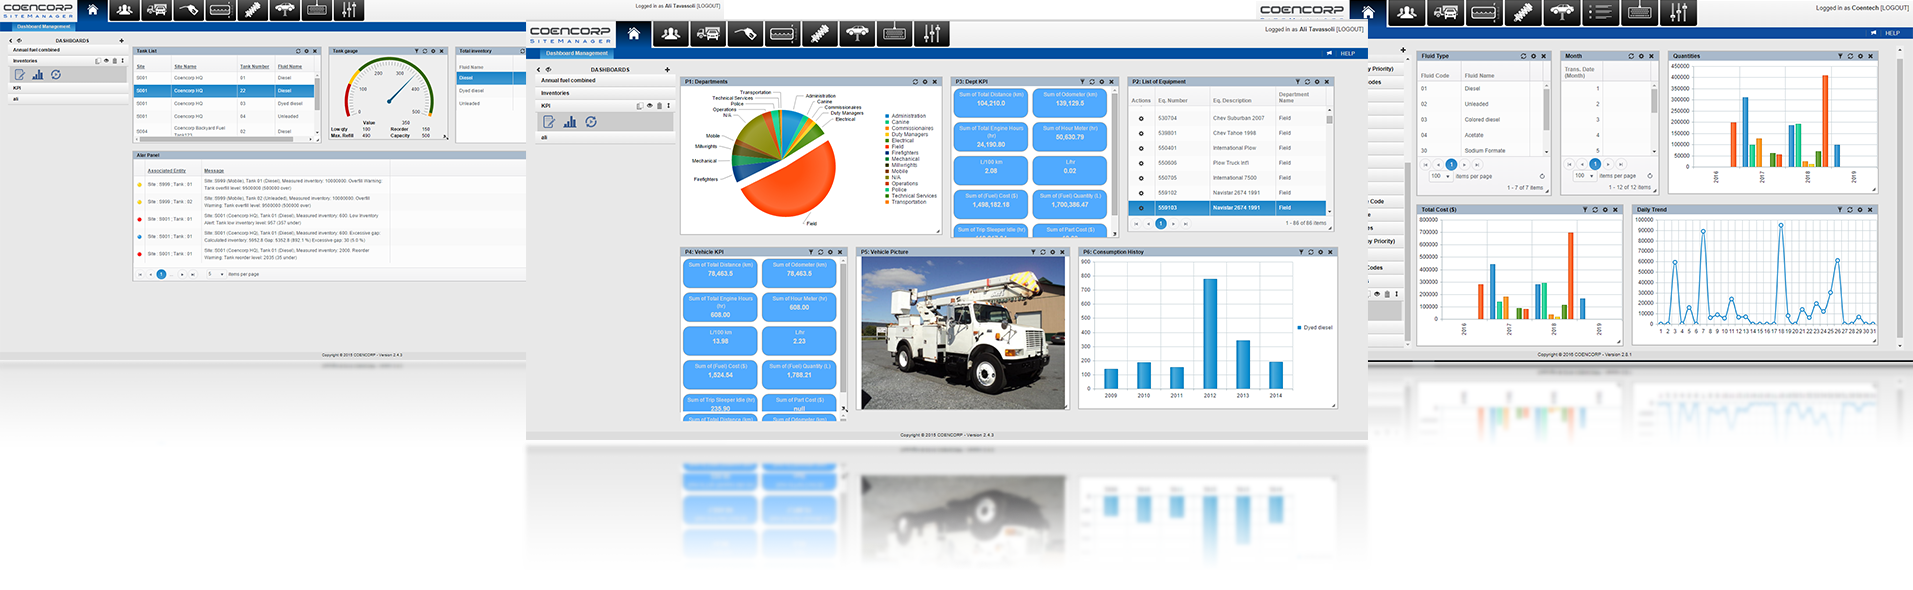 computer screenshots of various dashboard arrangements showing Coencorp's SM2 mobile fuel management software